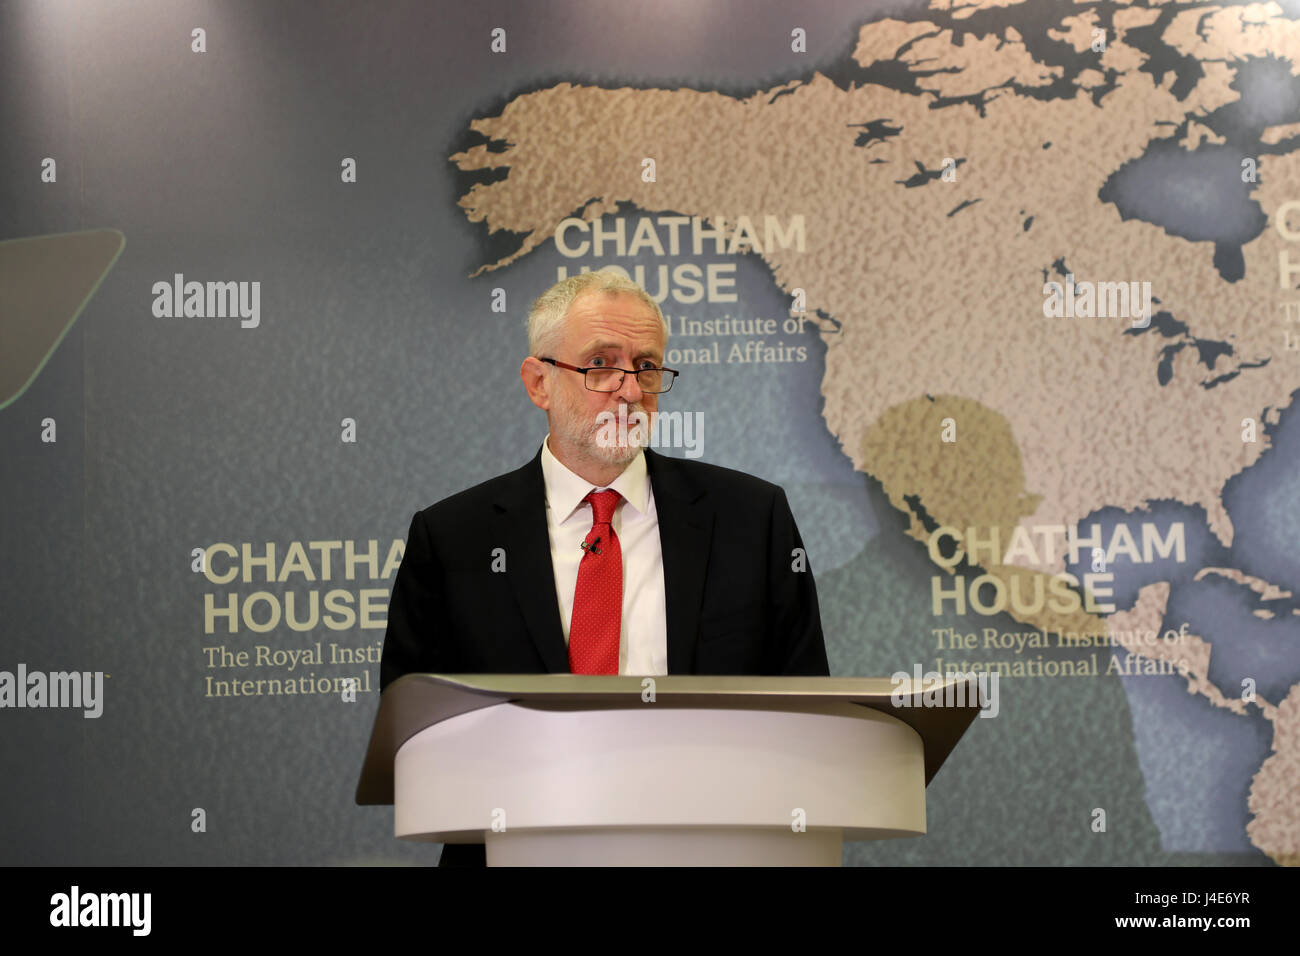 Chatham House, London, UK. 12th May, 2017. Jeremy Corbyn, leader of the Labour Party, gives a speech on his party's Stock Photo